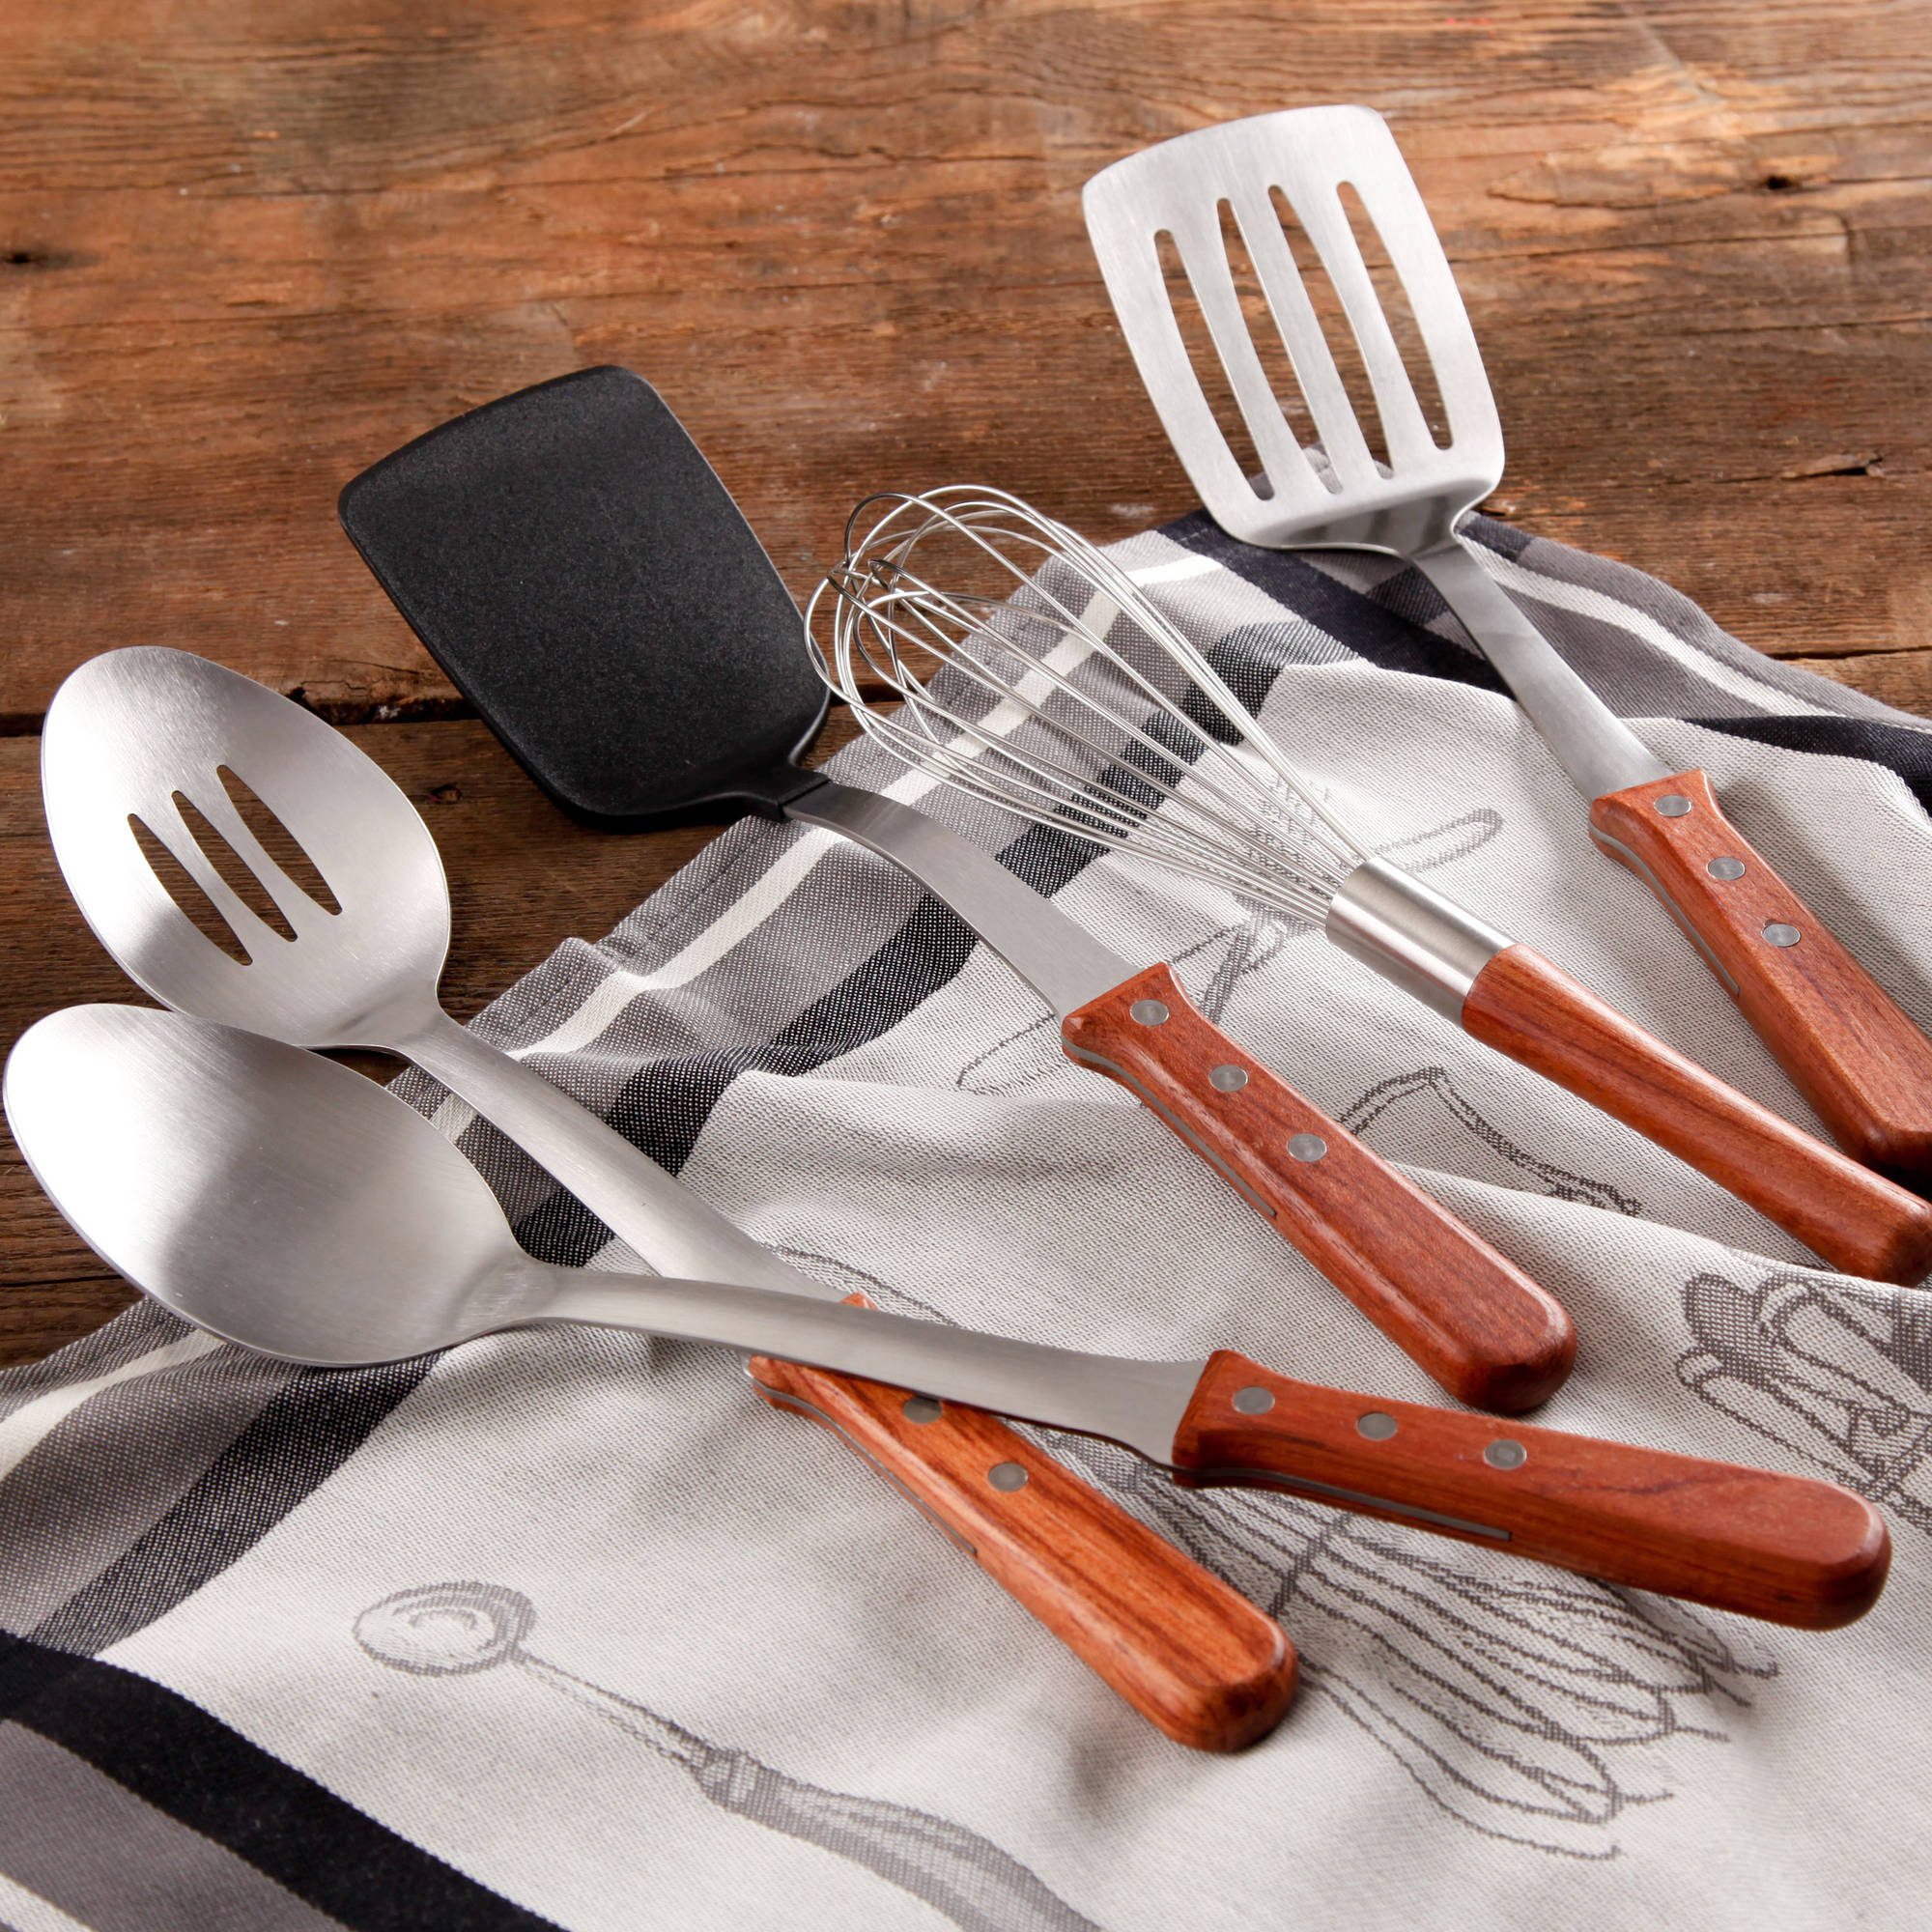 The Pioneer Woman Cowboy Rustic Breakfast Essentials 5-Piece Kitchen Tool Set with Rosewood Handle